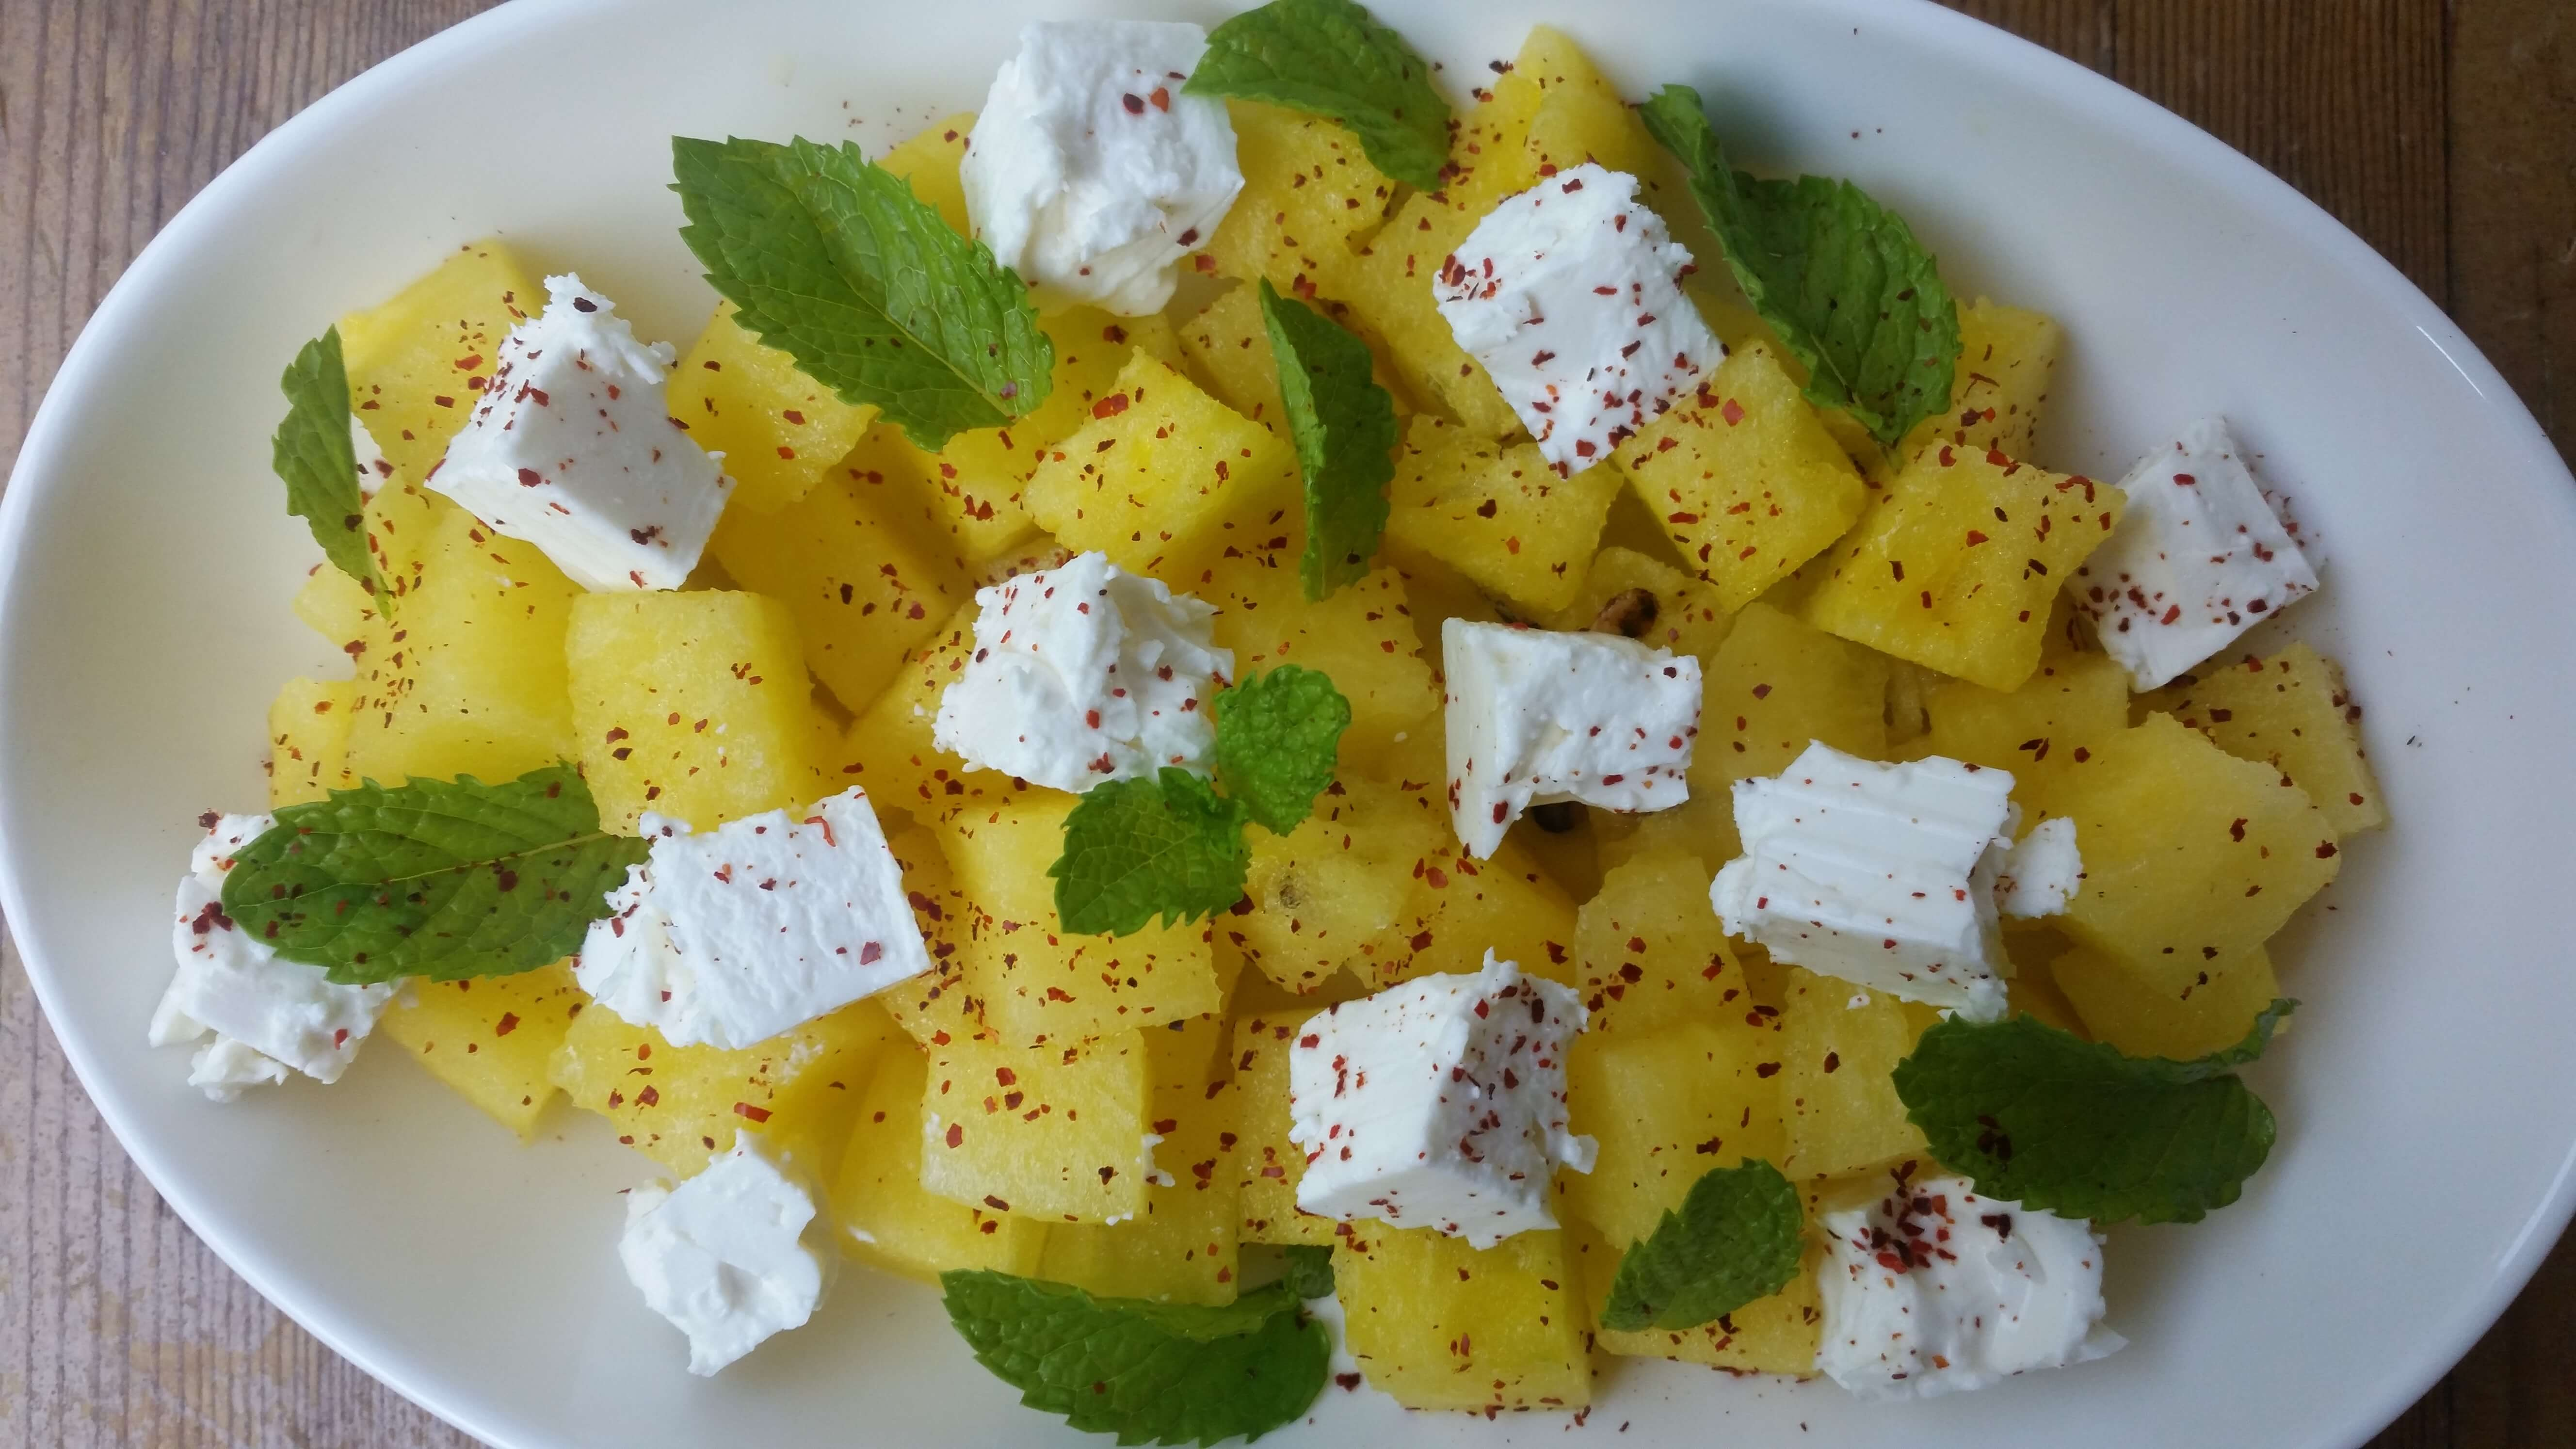 Watermelon Feta Salad Recipe with Mint